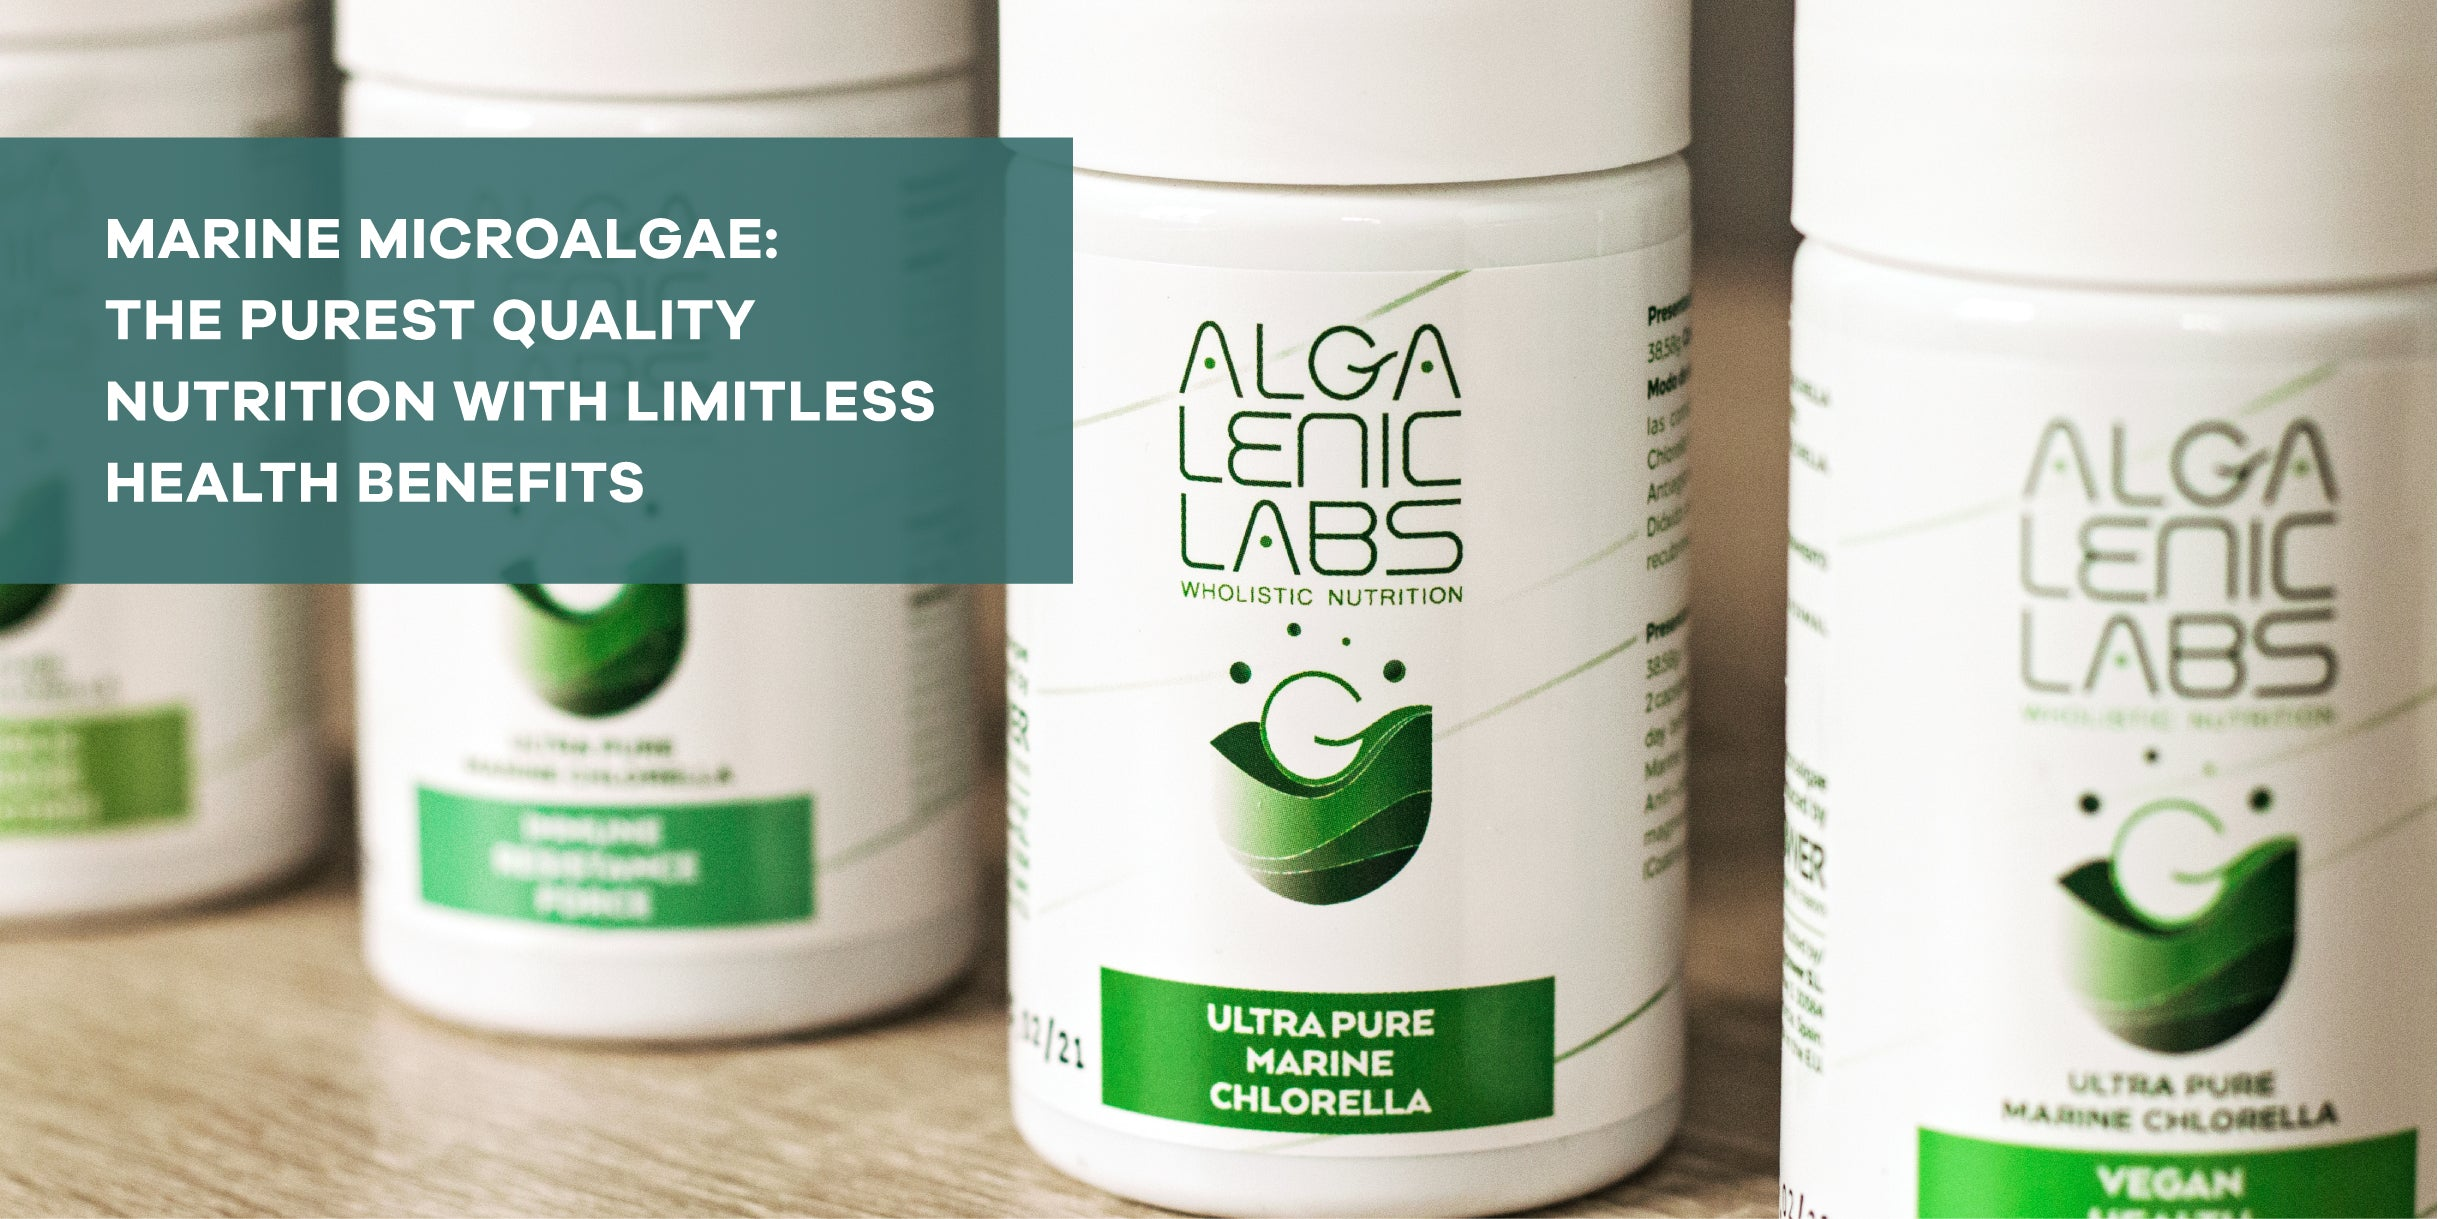 Algalenic Labs Marine Microalgae Chlorella Supplements